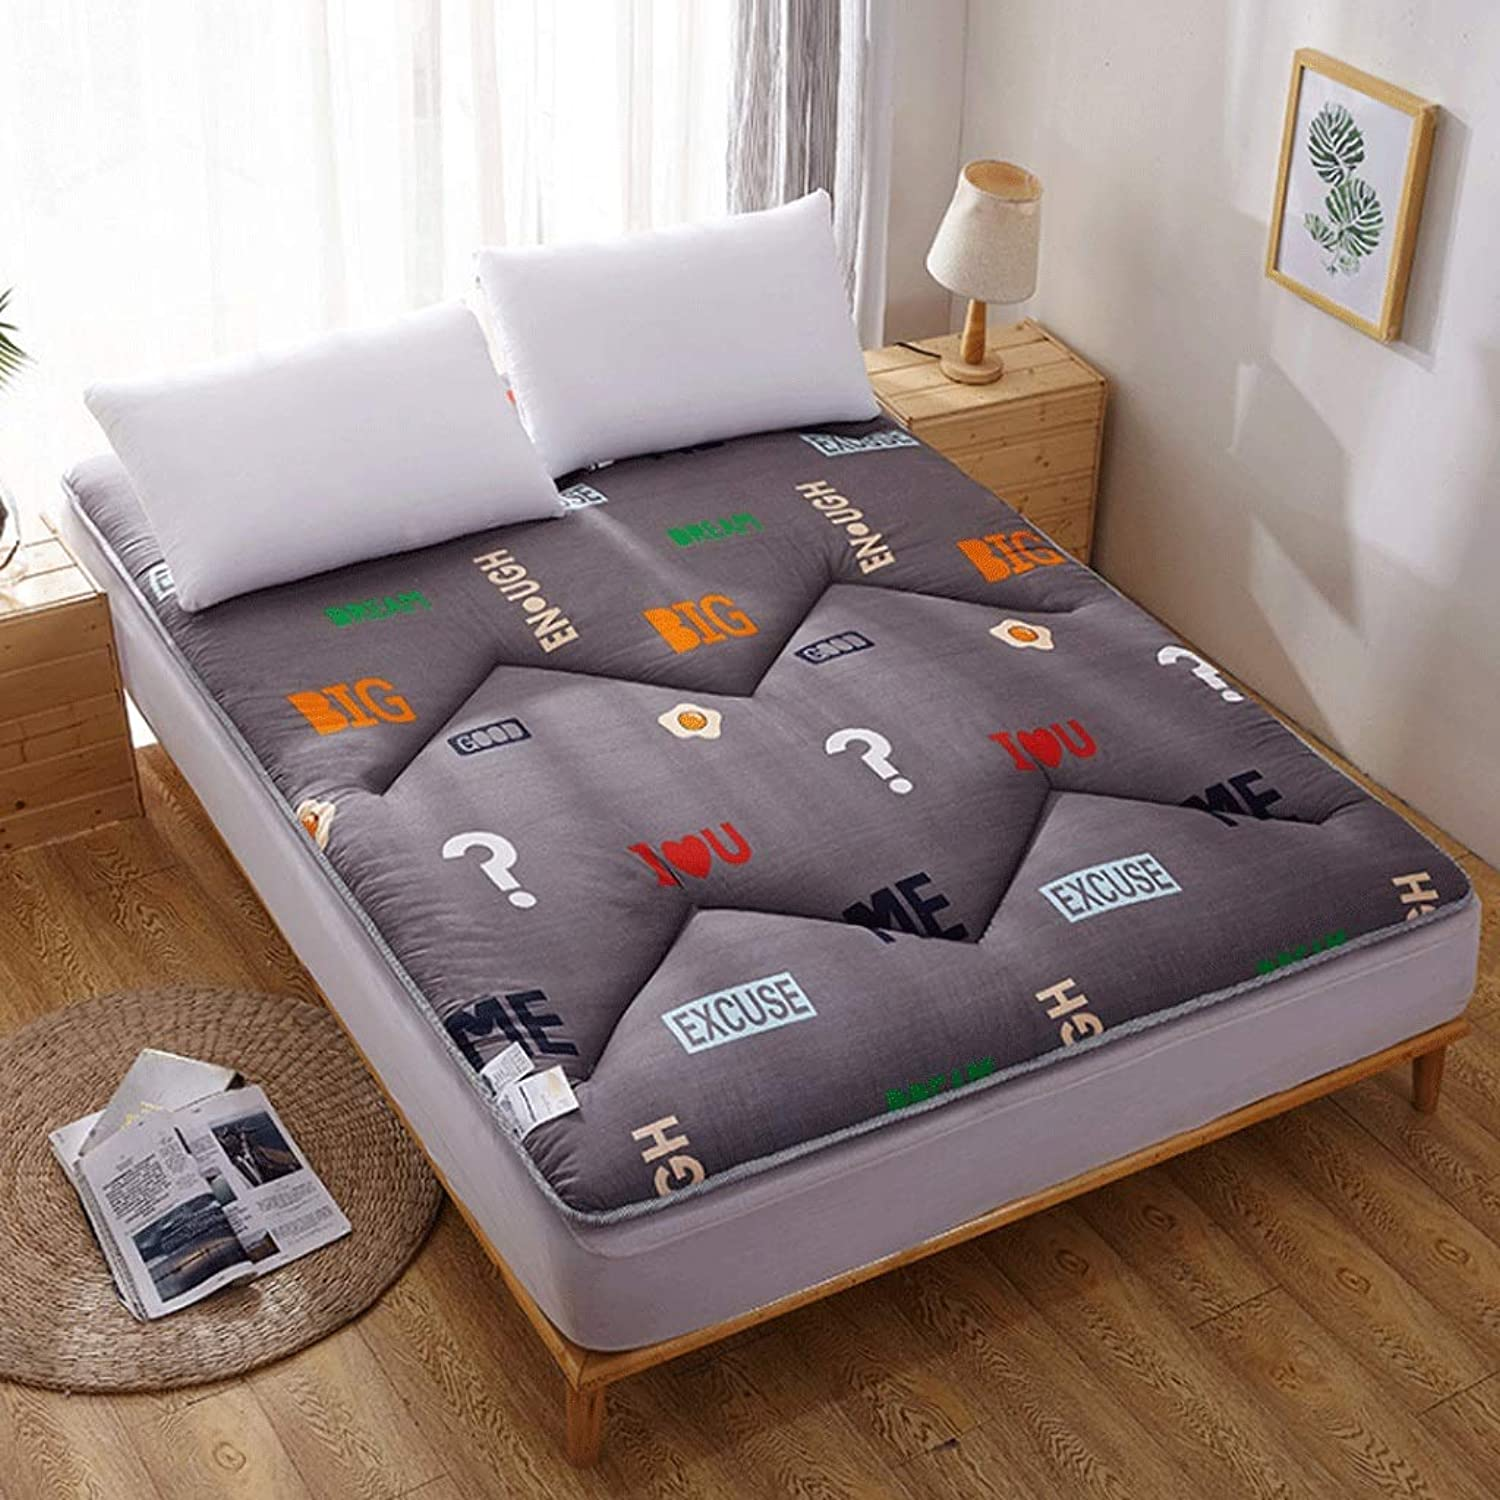 Foldable Student Sleeping Mat Tatami Mattress Moisture-Absorbing Breathable - 4 Sizes G (color   J, Size   100x200cm)